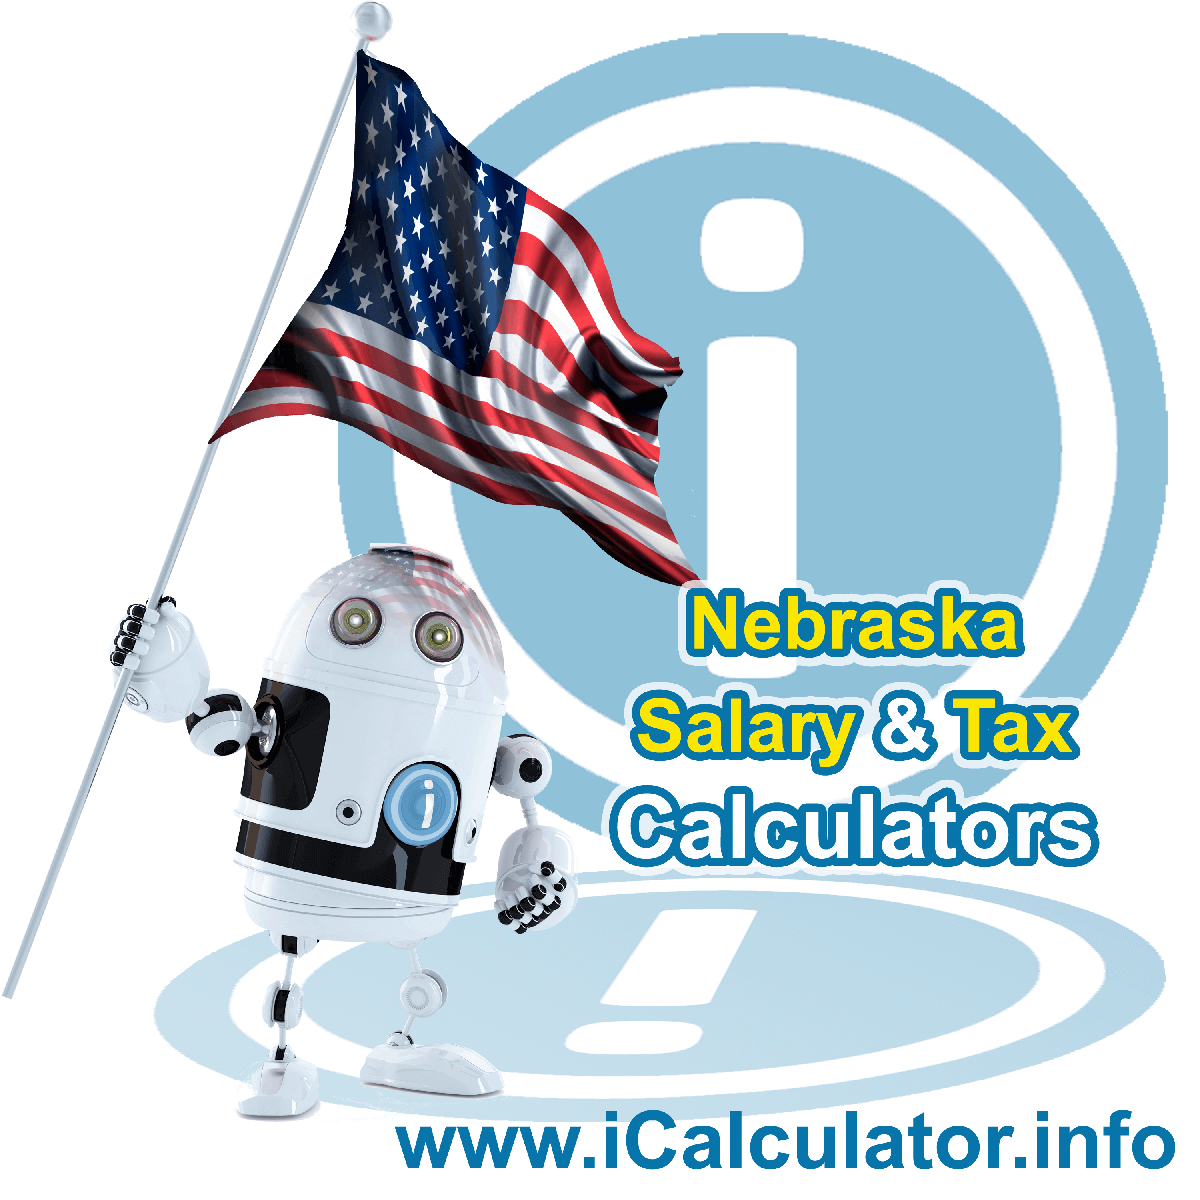 Nebraska Salary Calculator 2020 | iCalculator | The Nebraska Salary Calculator allows you to quickly calculate your salary after tax including Nebraska State Tax, Federal State Tax, Medicare Deductions, Social Security, Capital Gains and other income tax and salary deductions complete with supporting Nebraska state tax tables